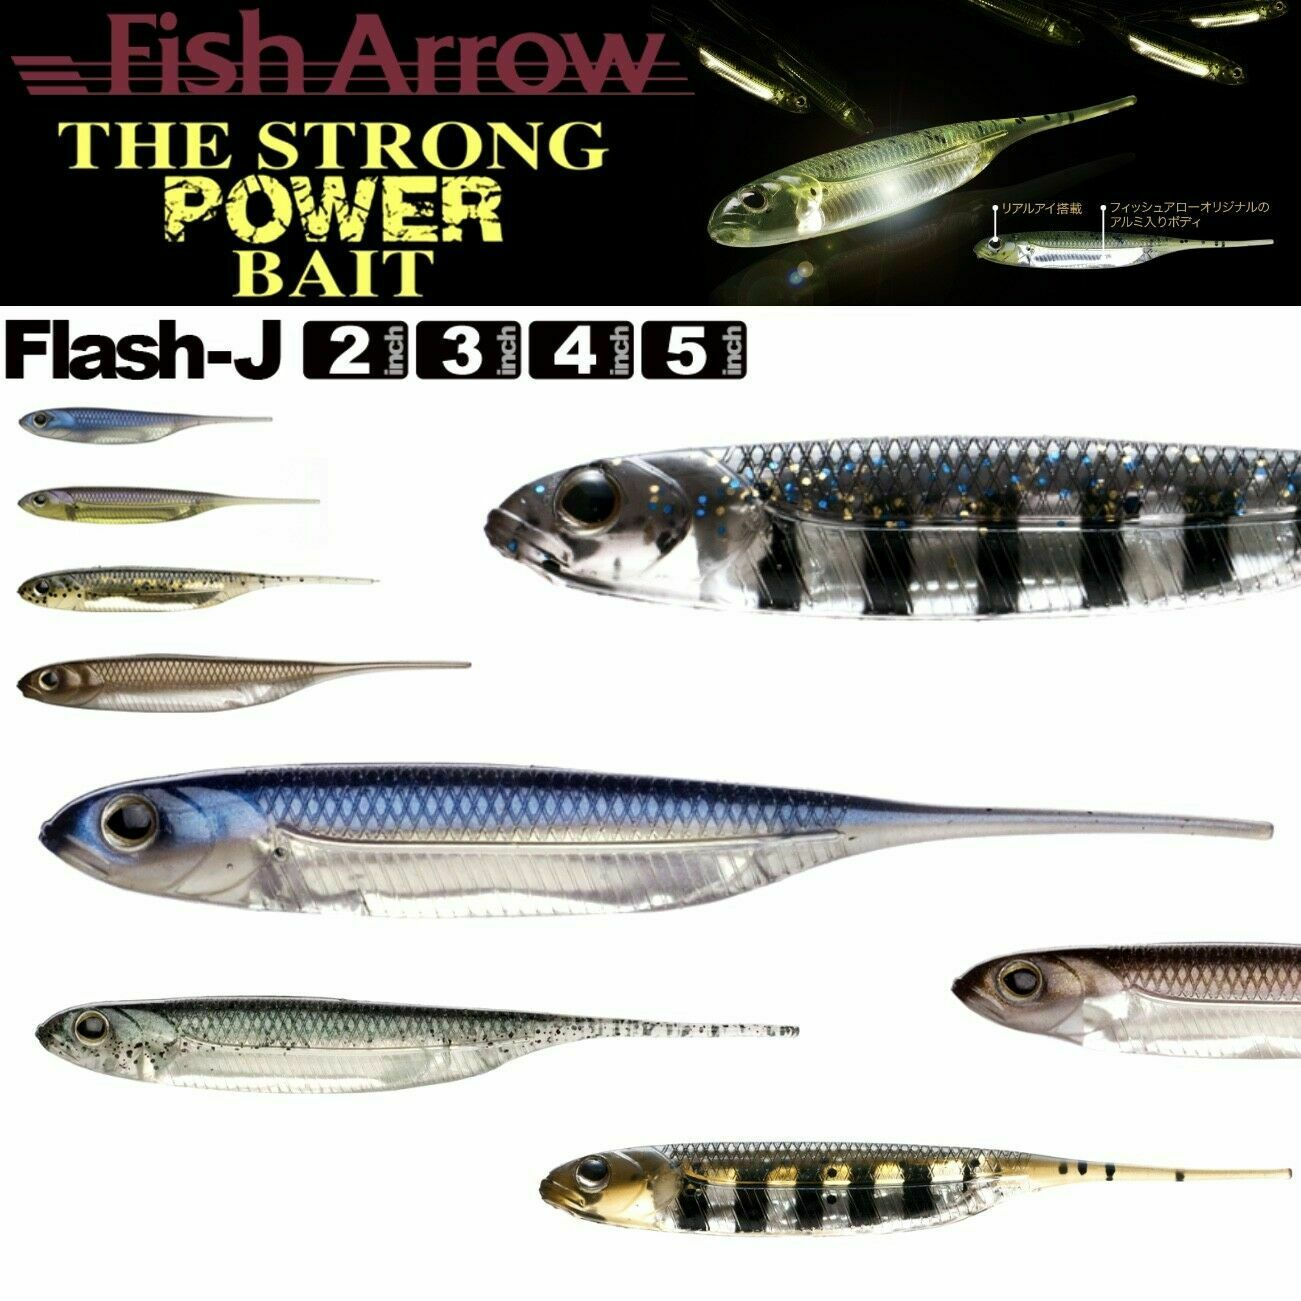 Fish Arrow Soft Köder Flash J SW 1 Zoll 5 Stück per pack #127 0226